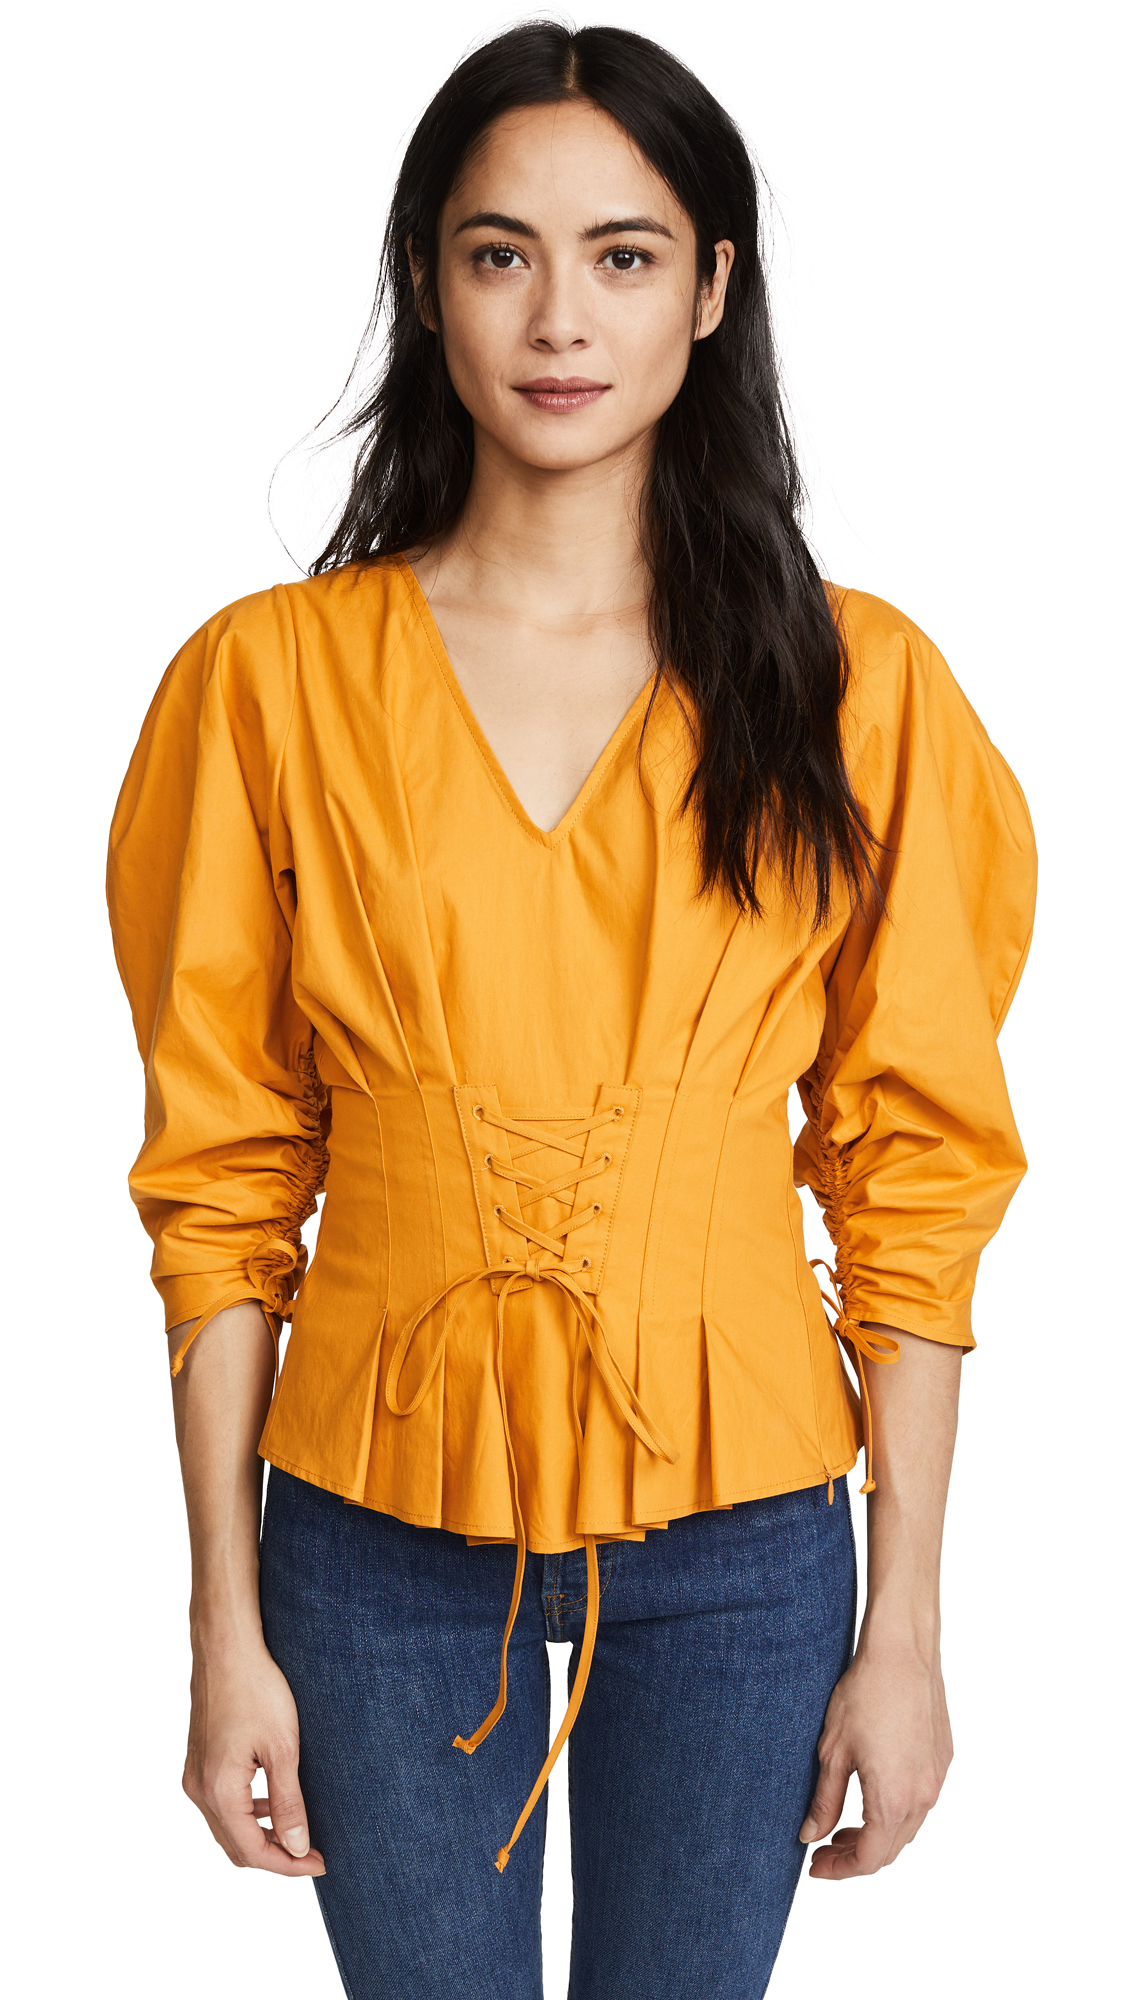 Sea 3/4 Sleeve Lace Up Blouse